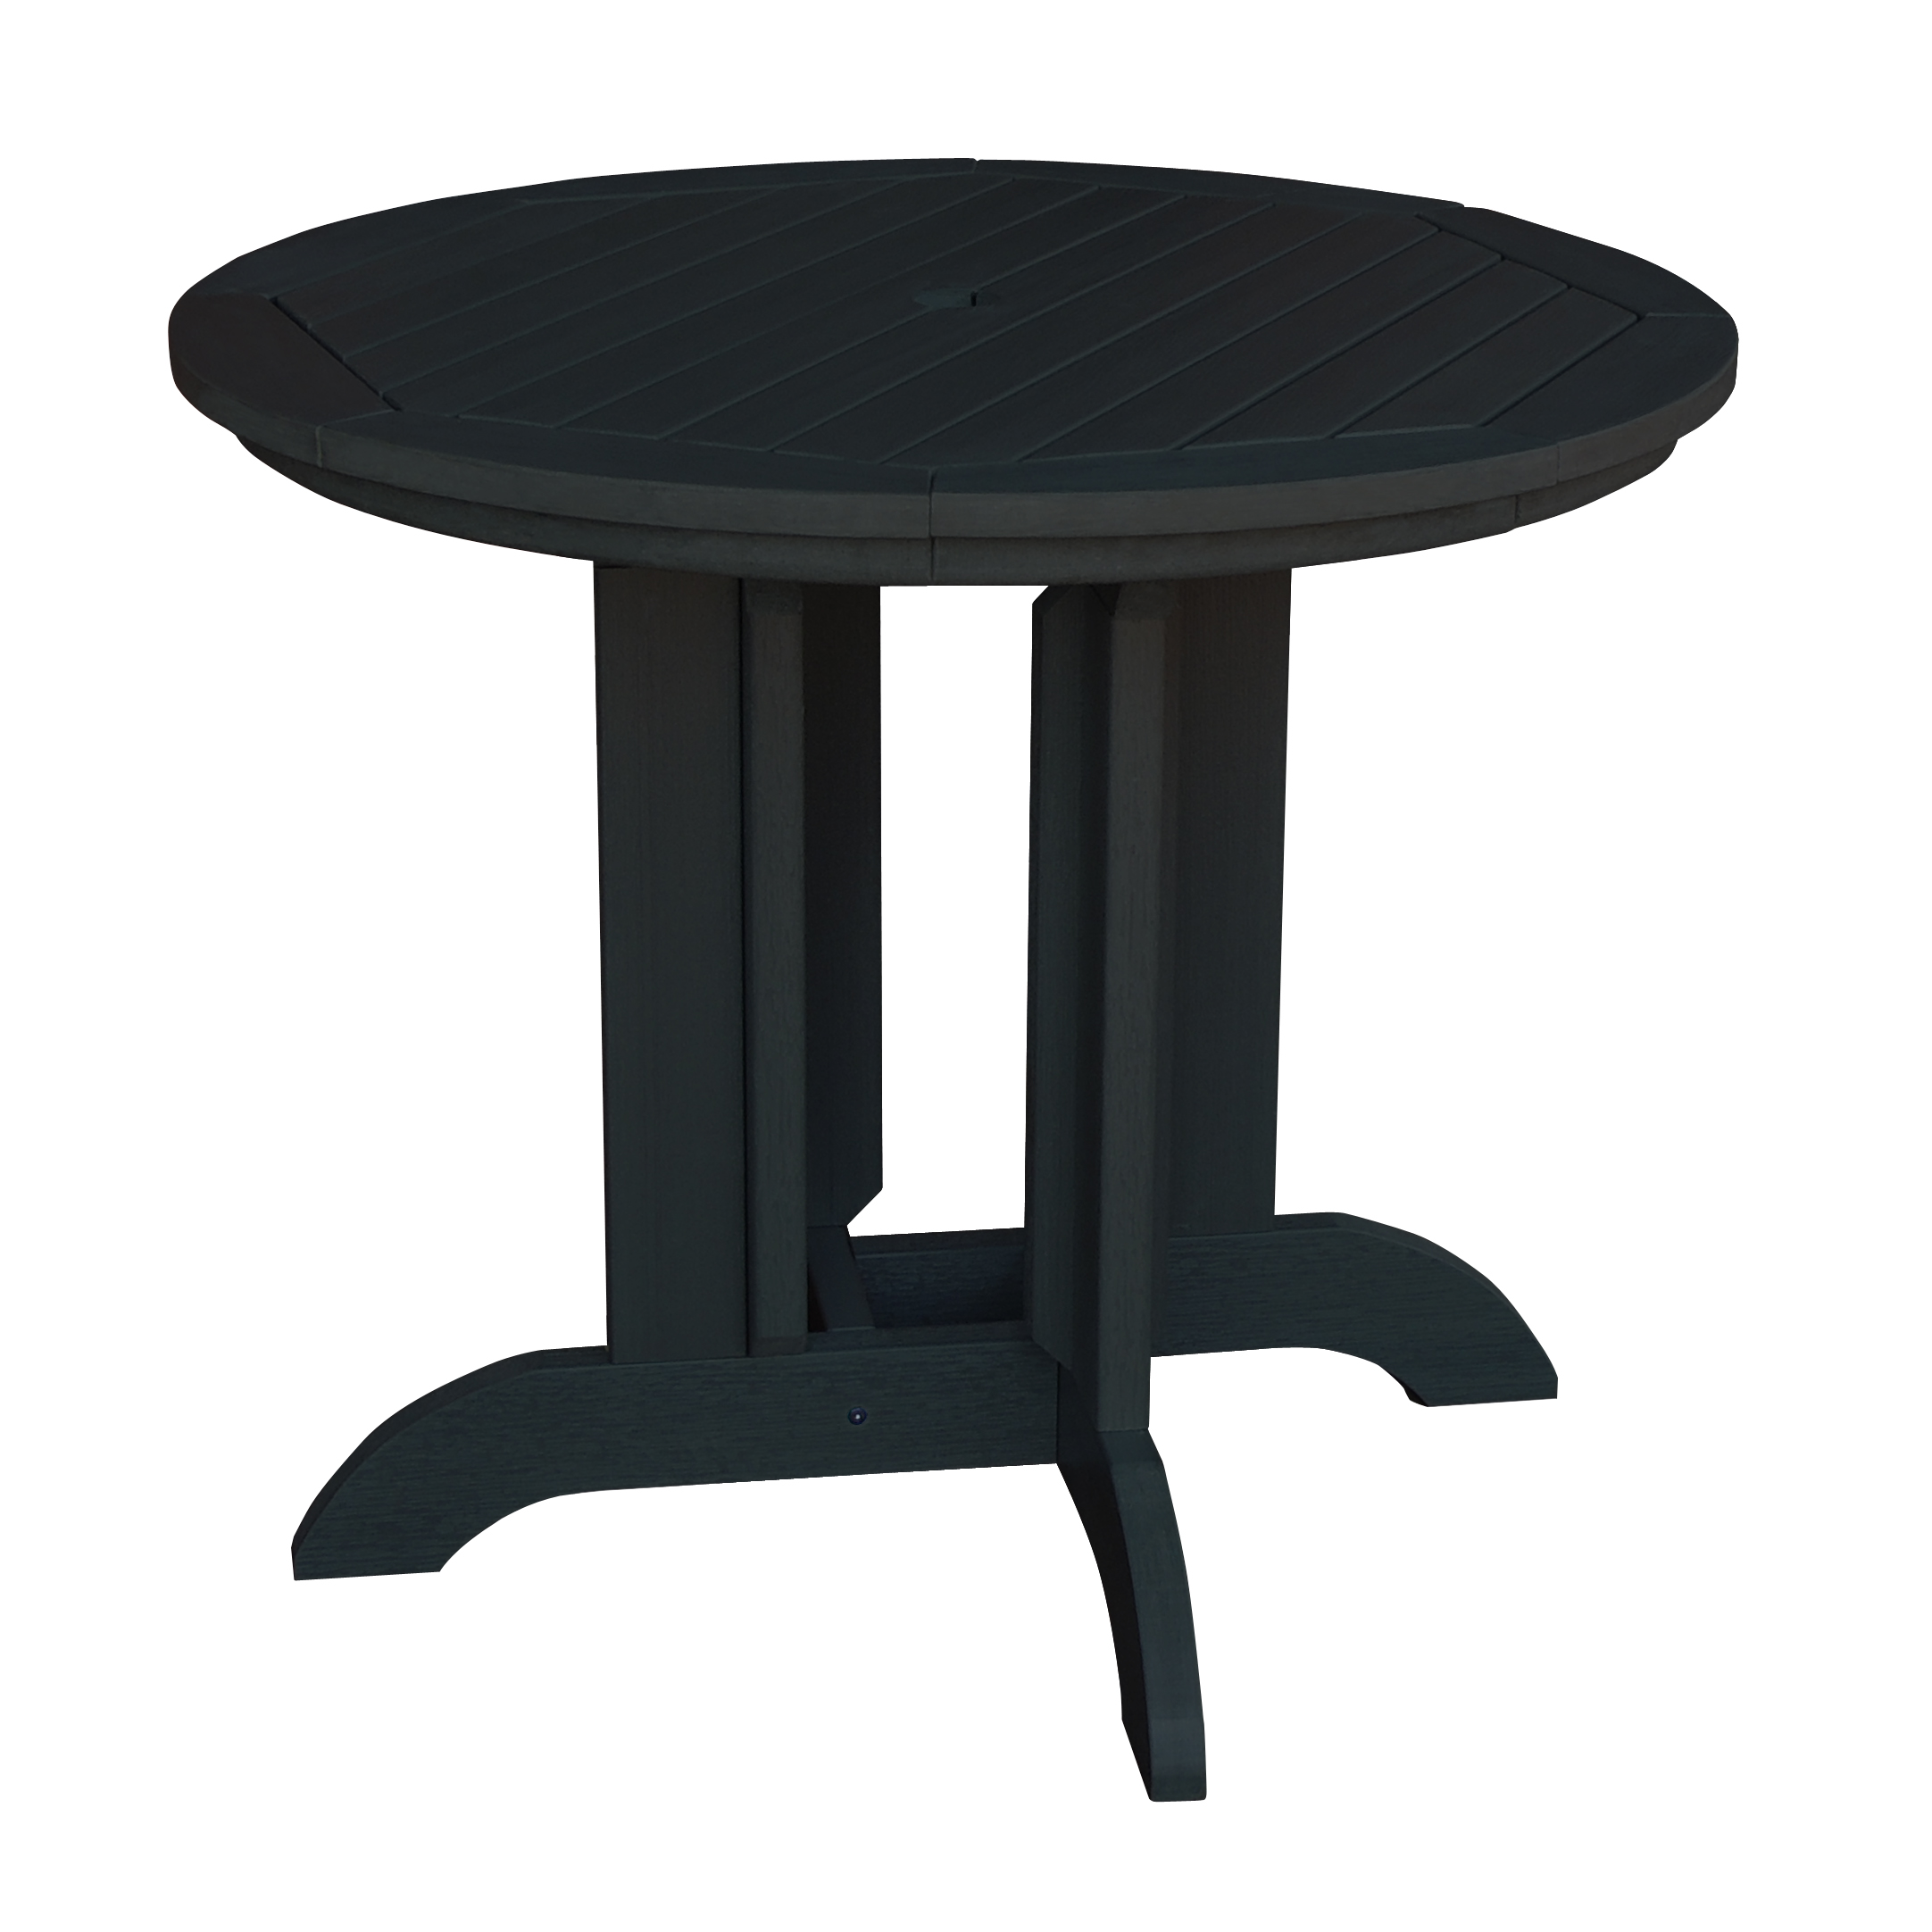 "highwood® Eco-Friendly Round 36"" Diameter Dining Table"